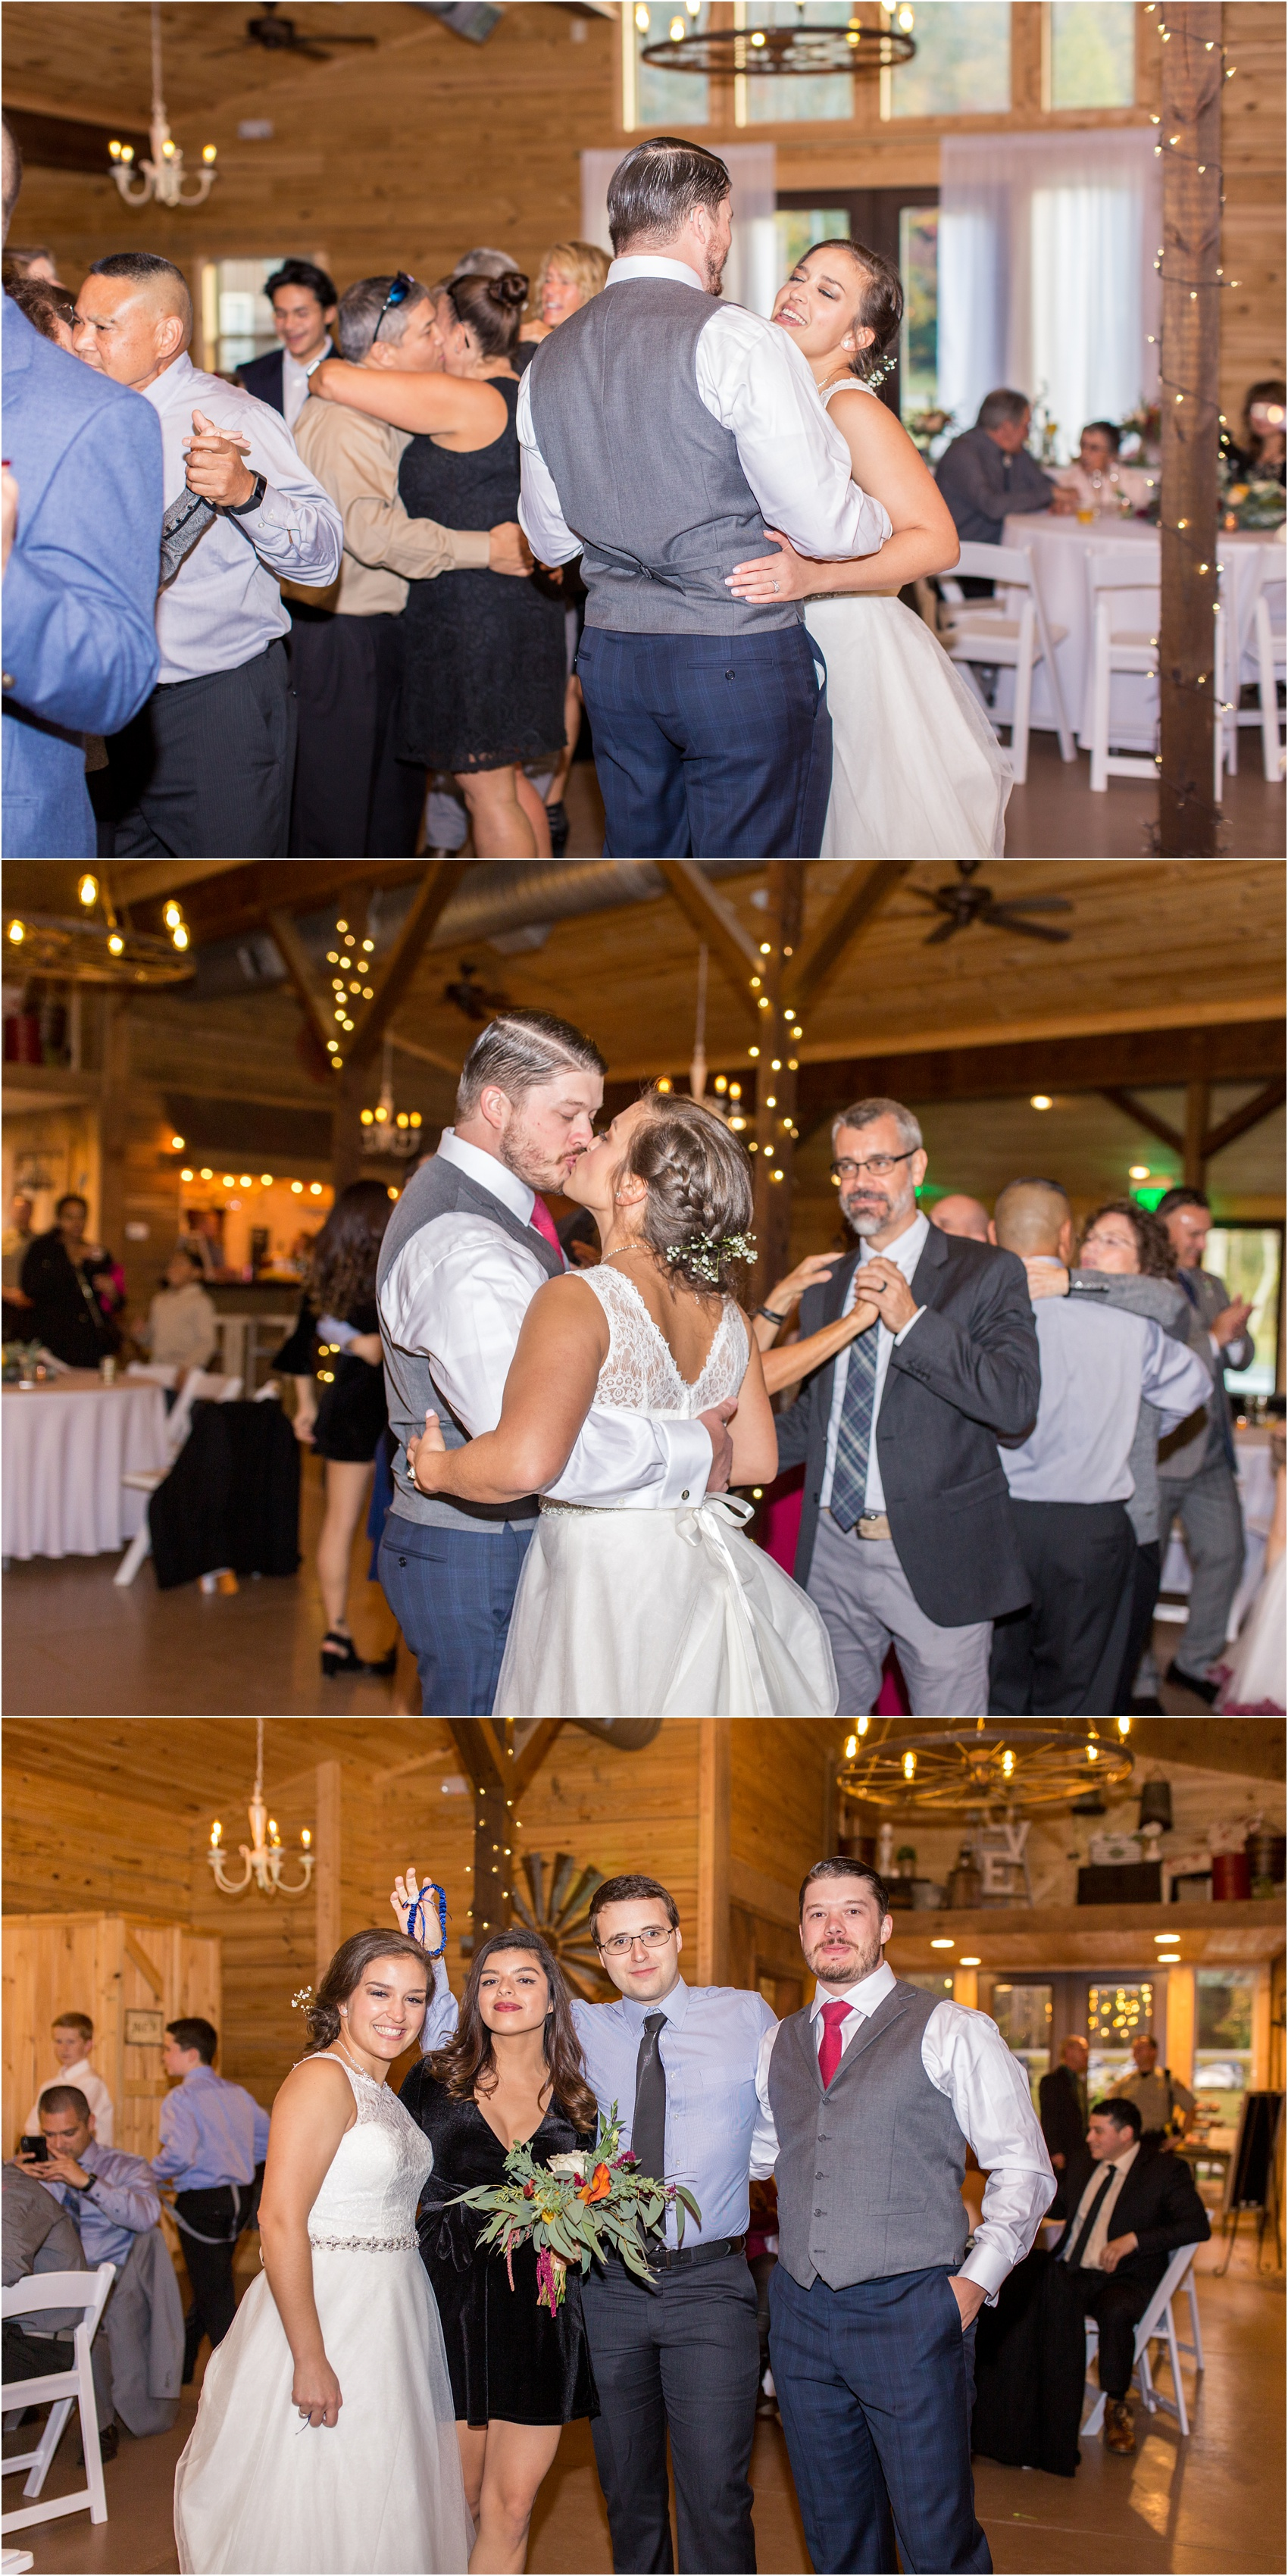 Savannah Eve Photography- McGeary-Epp Wedding- Sneak Peek-125.jpg